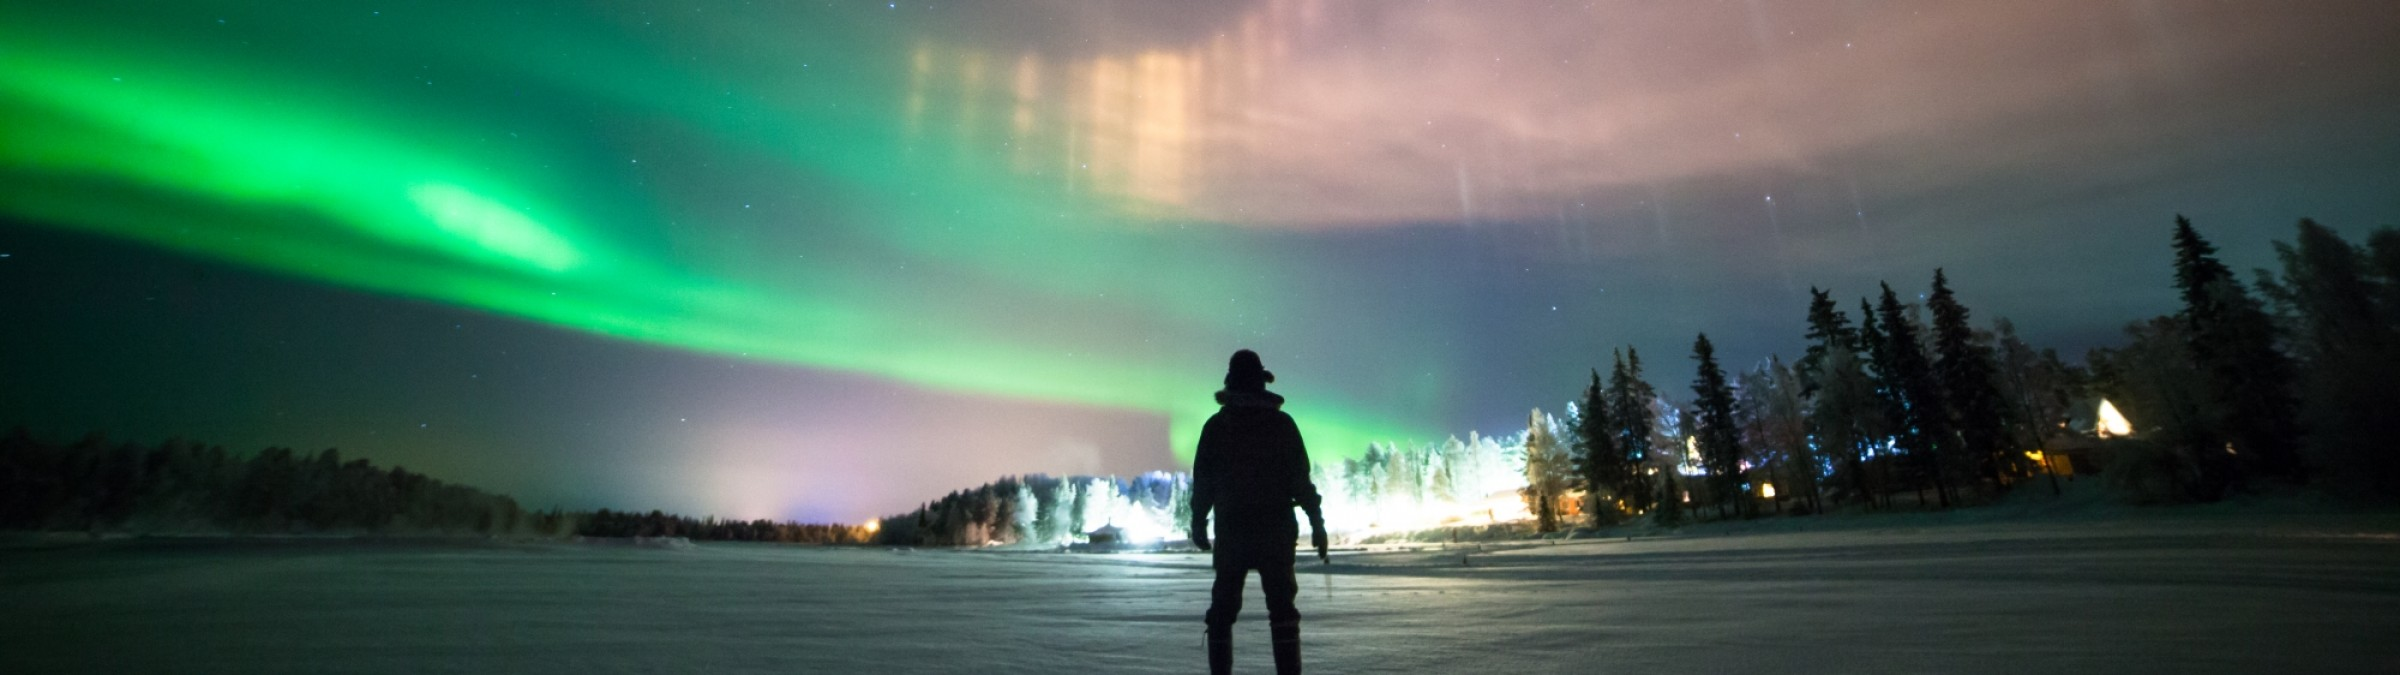 , Harriniva, jan 2016, January, northern lights, 2016, Credit Antti Pietikainen